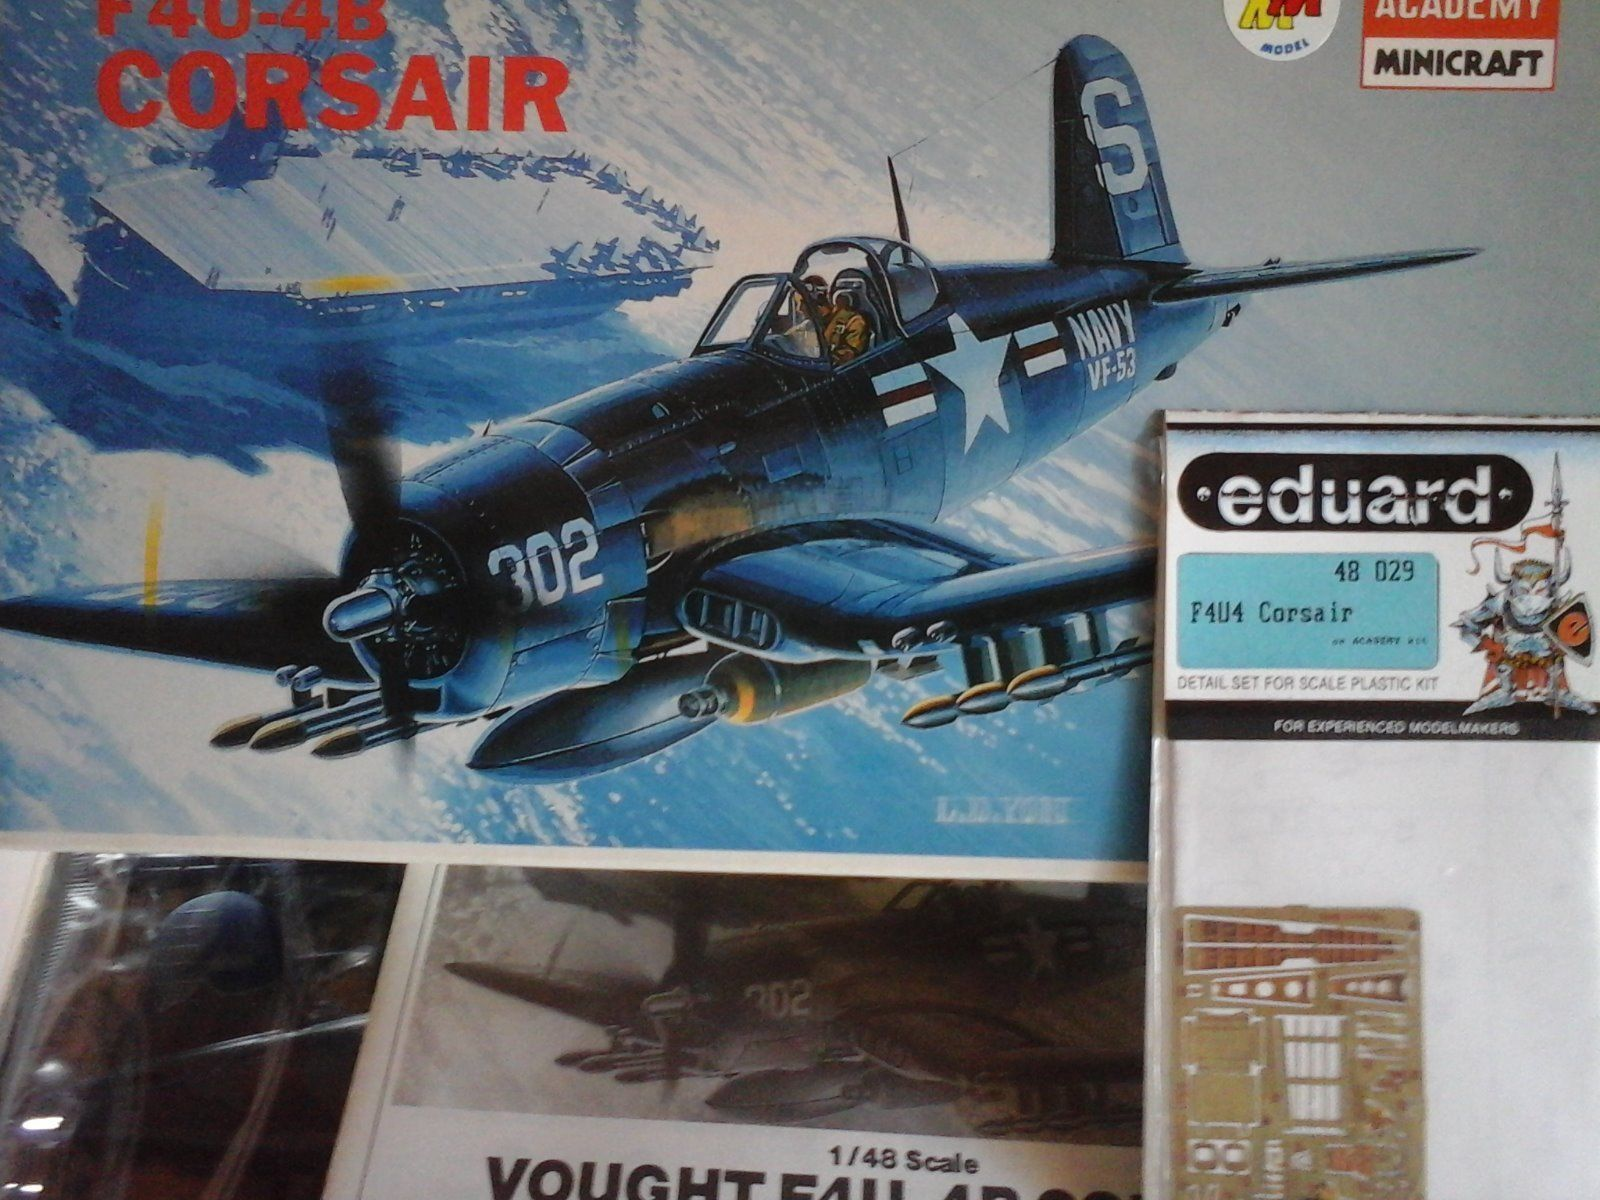 VOUGHT F4U-4B CORSAIR 1/48 SCALE ACADEMY MINICRAFT MODEL+PHOTOETCHED PARTS